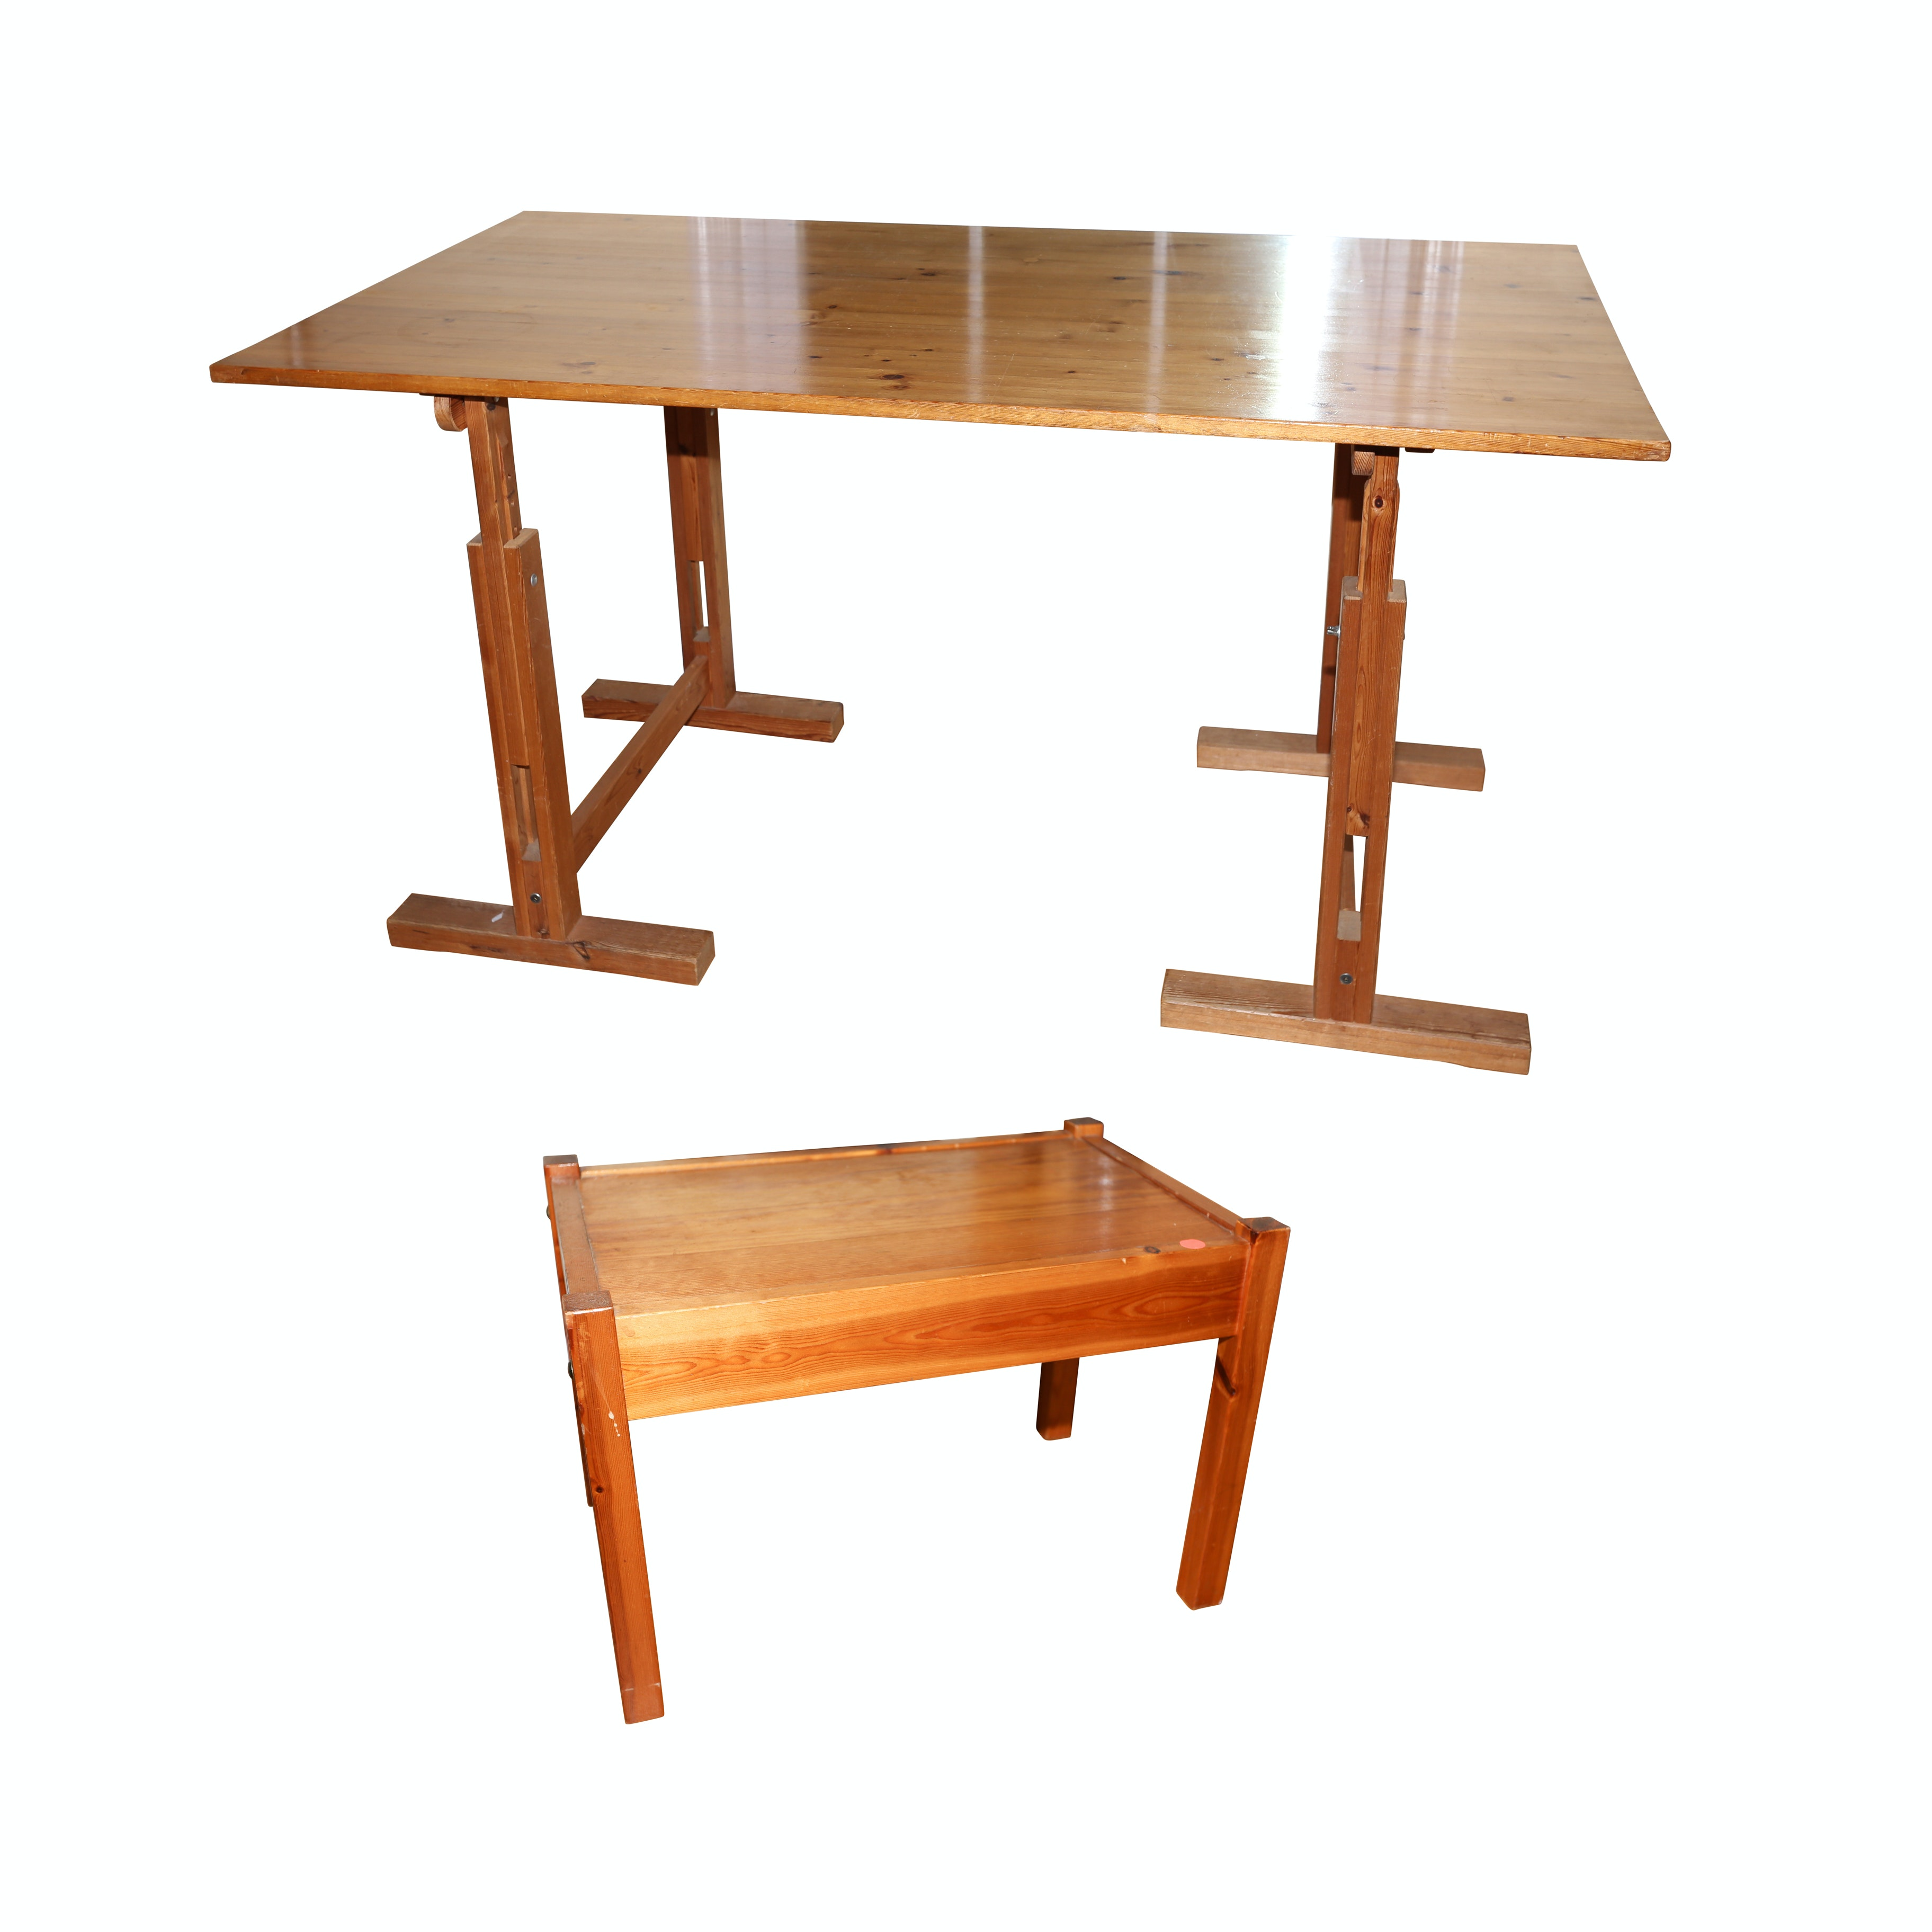 Adjustable Height Pine Desk and Side Table